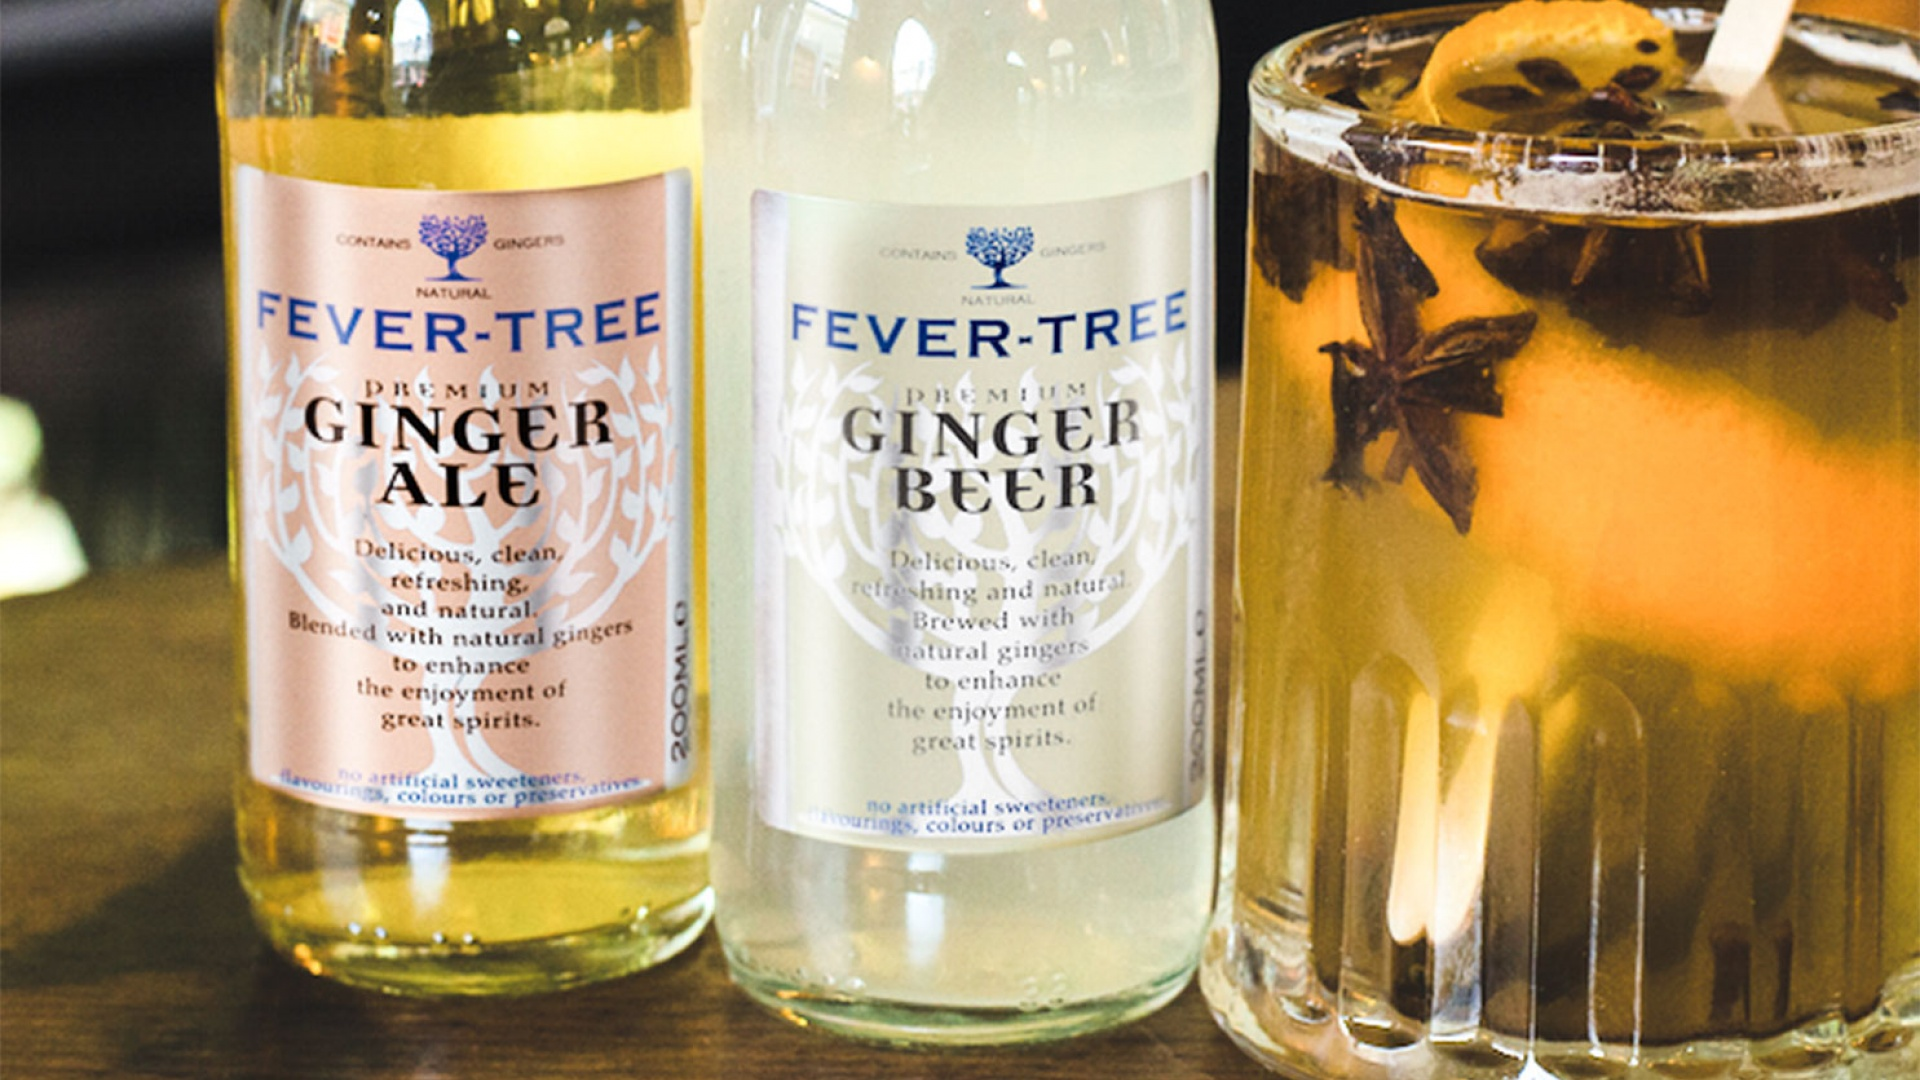 Fever-Tree Hot Ginger Punch